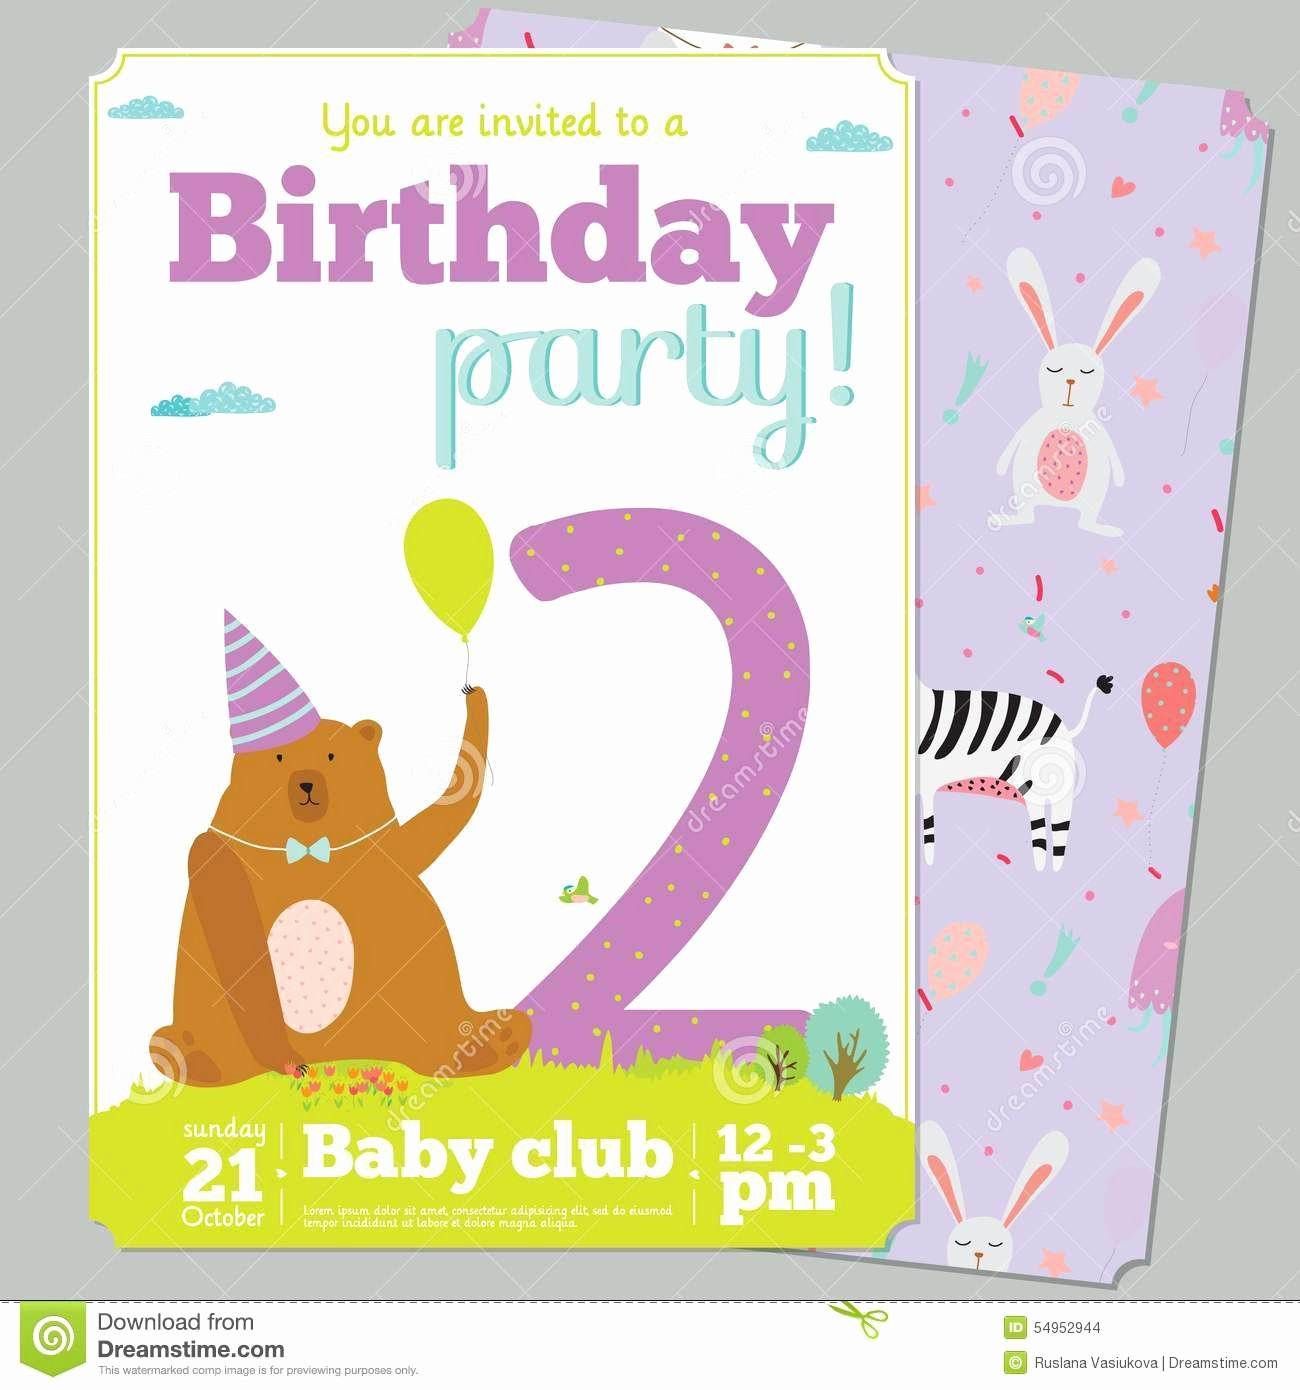 Birthday Party Invitation Card Template Inspirational Birthday Party Invitation Card Template with Cute Stock